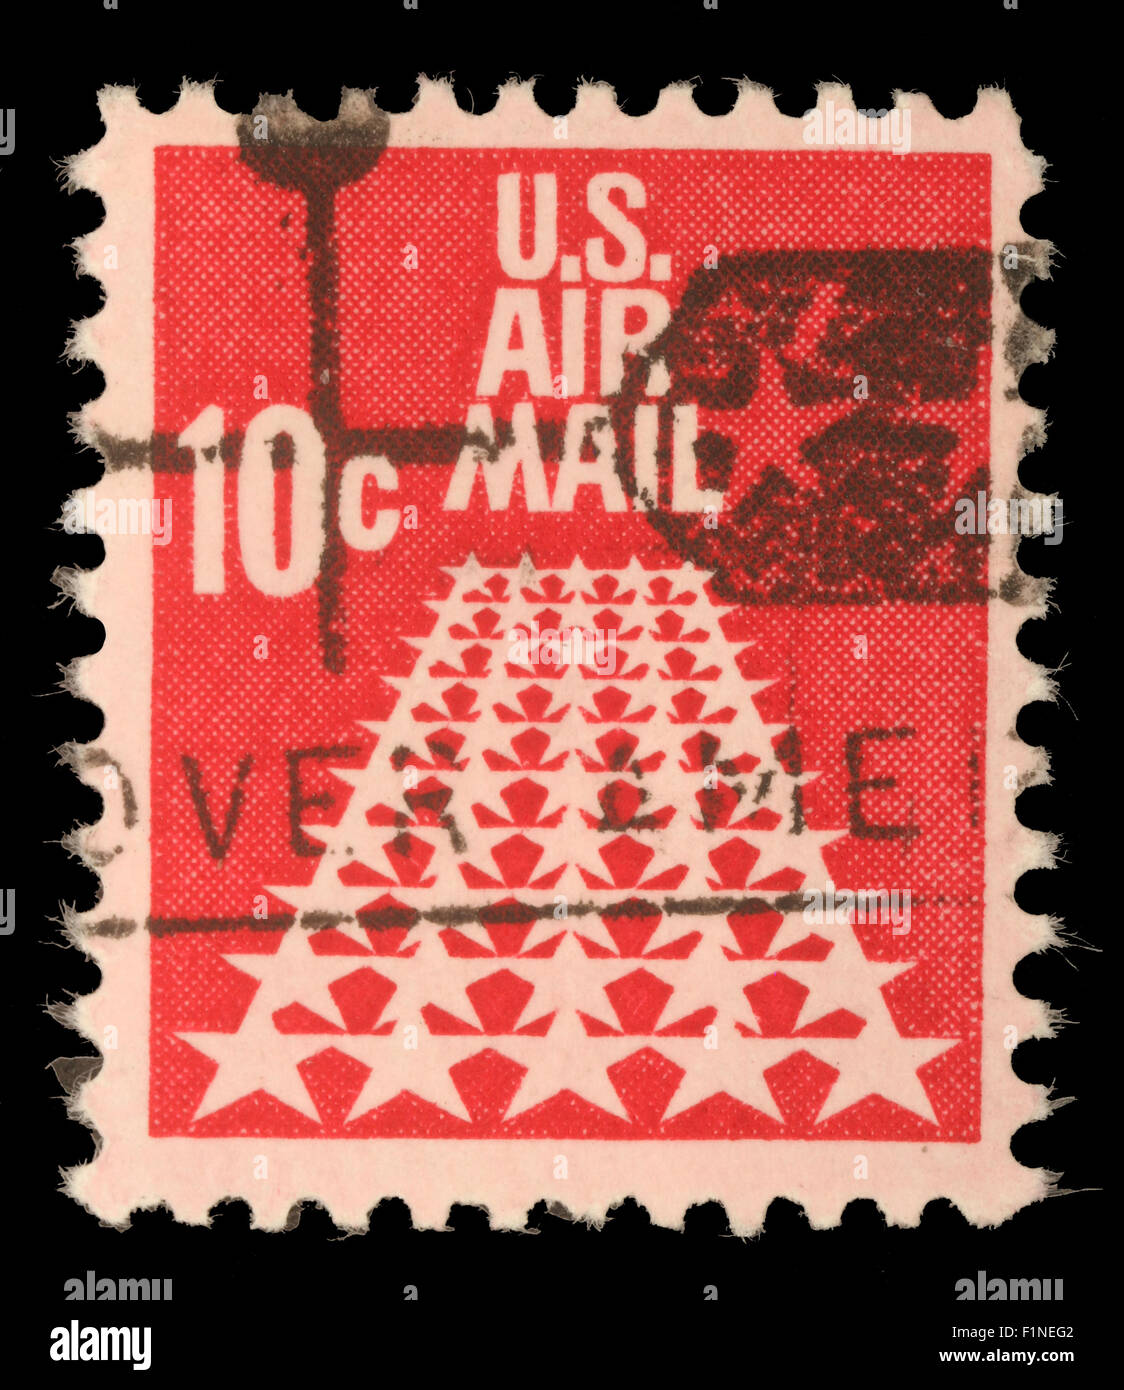 United States Postage Stamp In The Value Of 10c Used For Overseas Air Mail Deliveries Showing Symbols Circa 1968